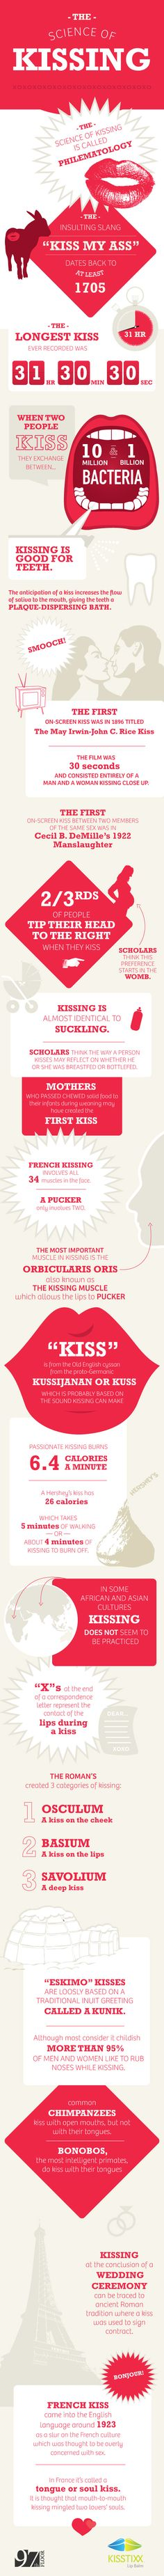 Lets Talk About Kissing Science